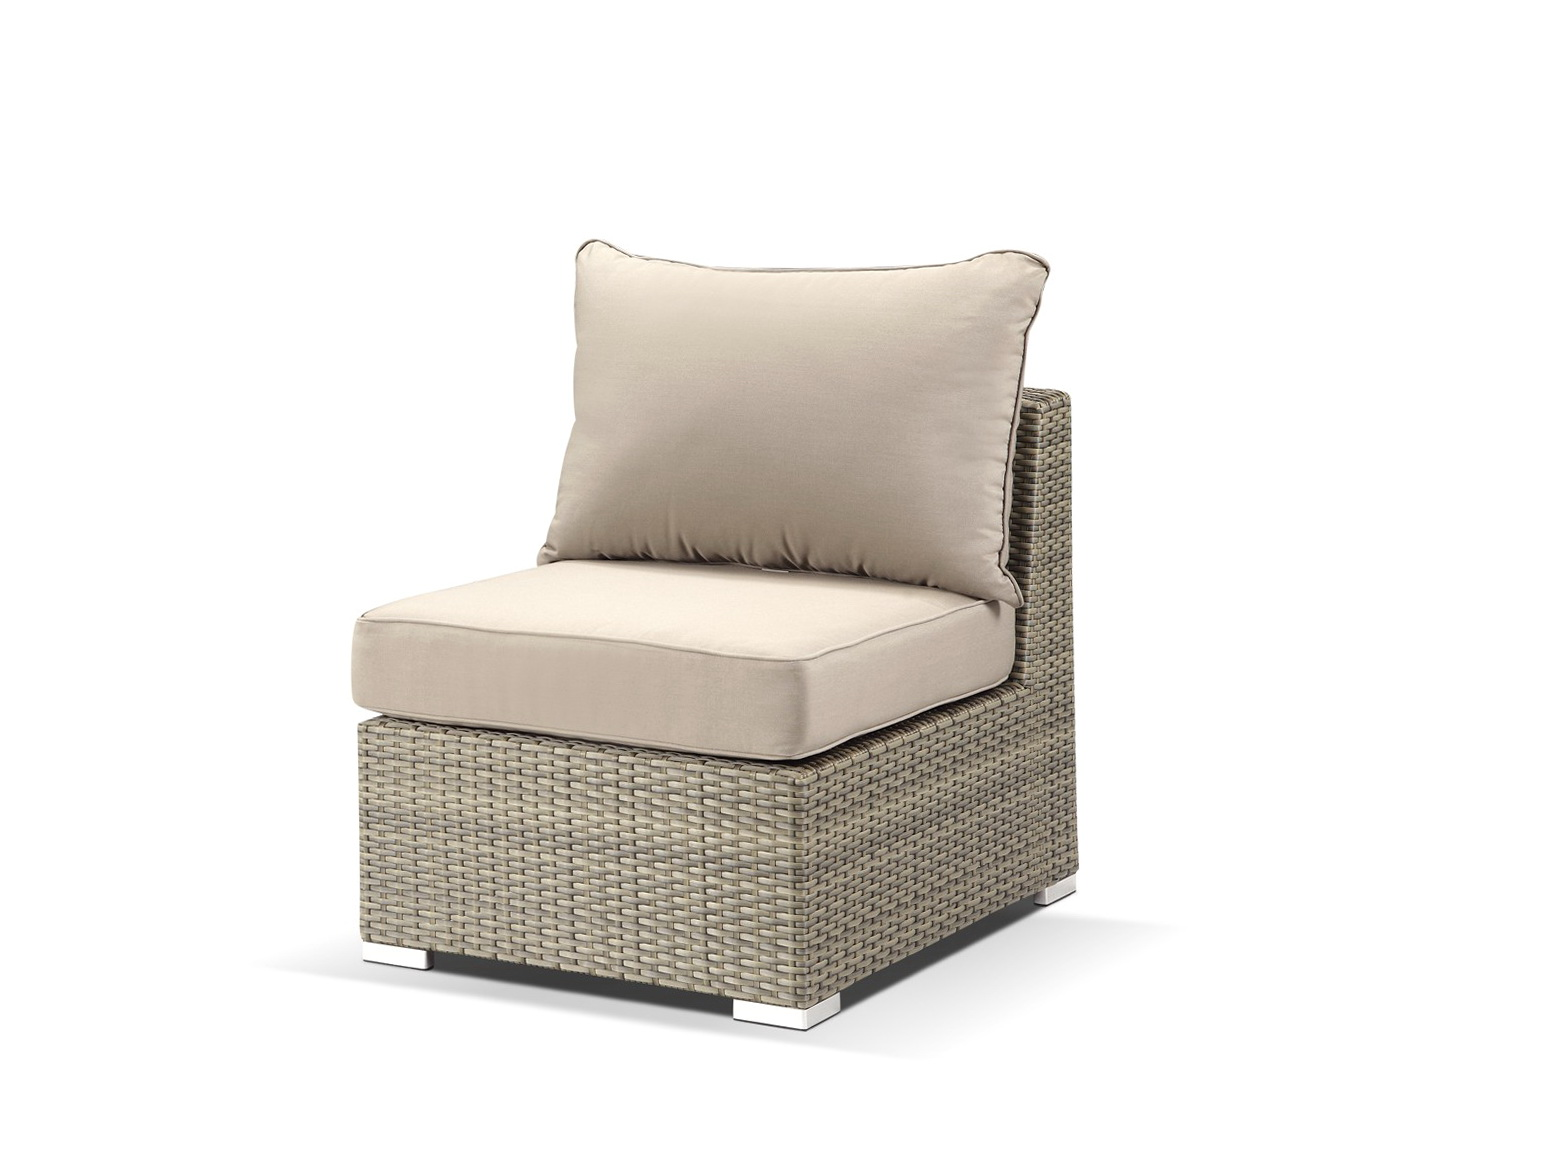 Outdoor Lounge Cushions Melbourne